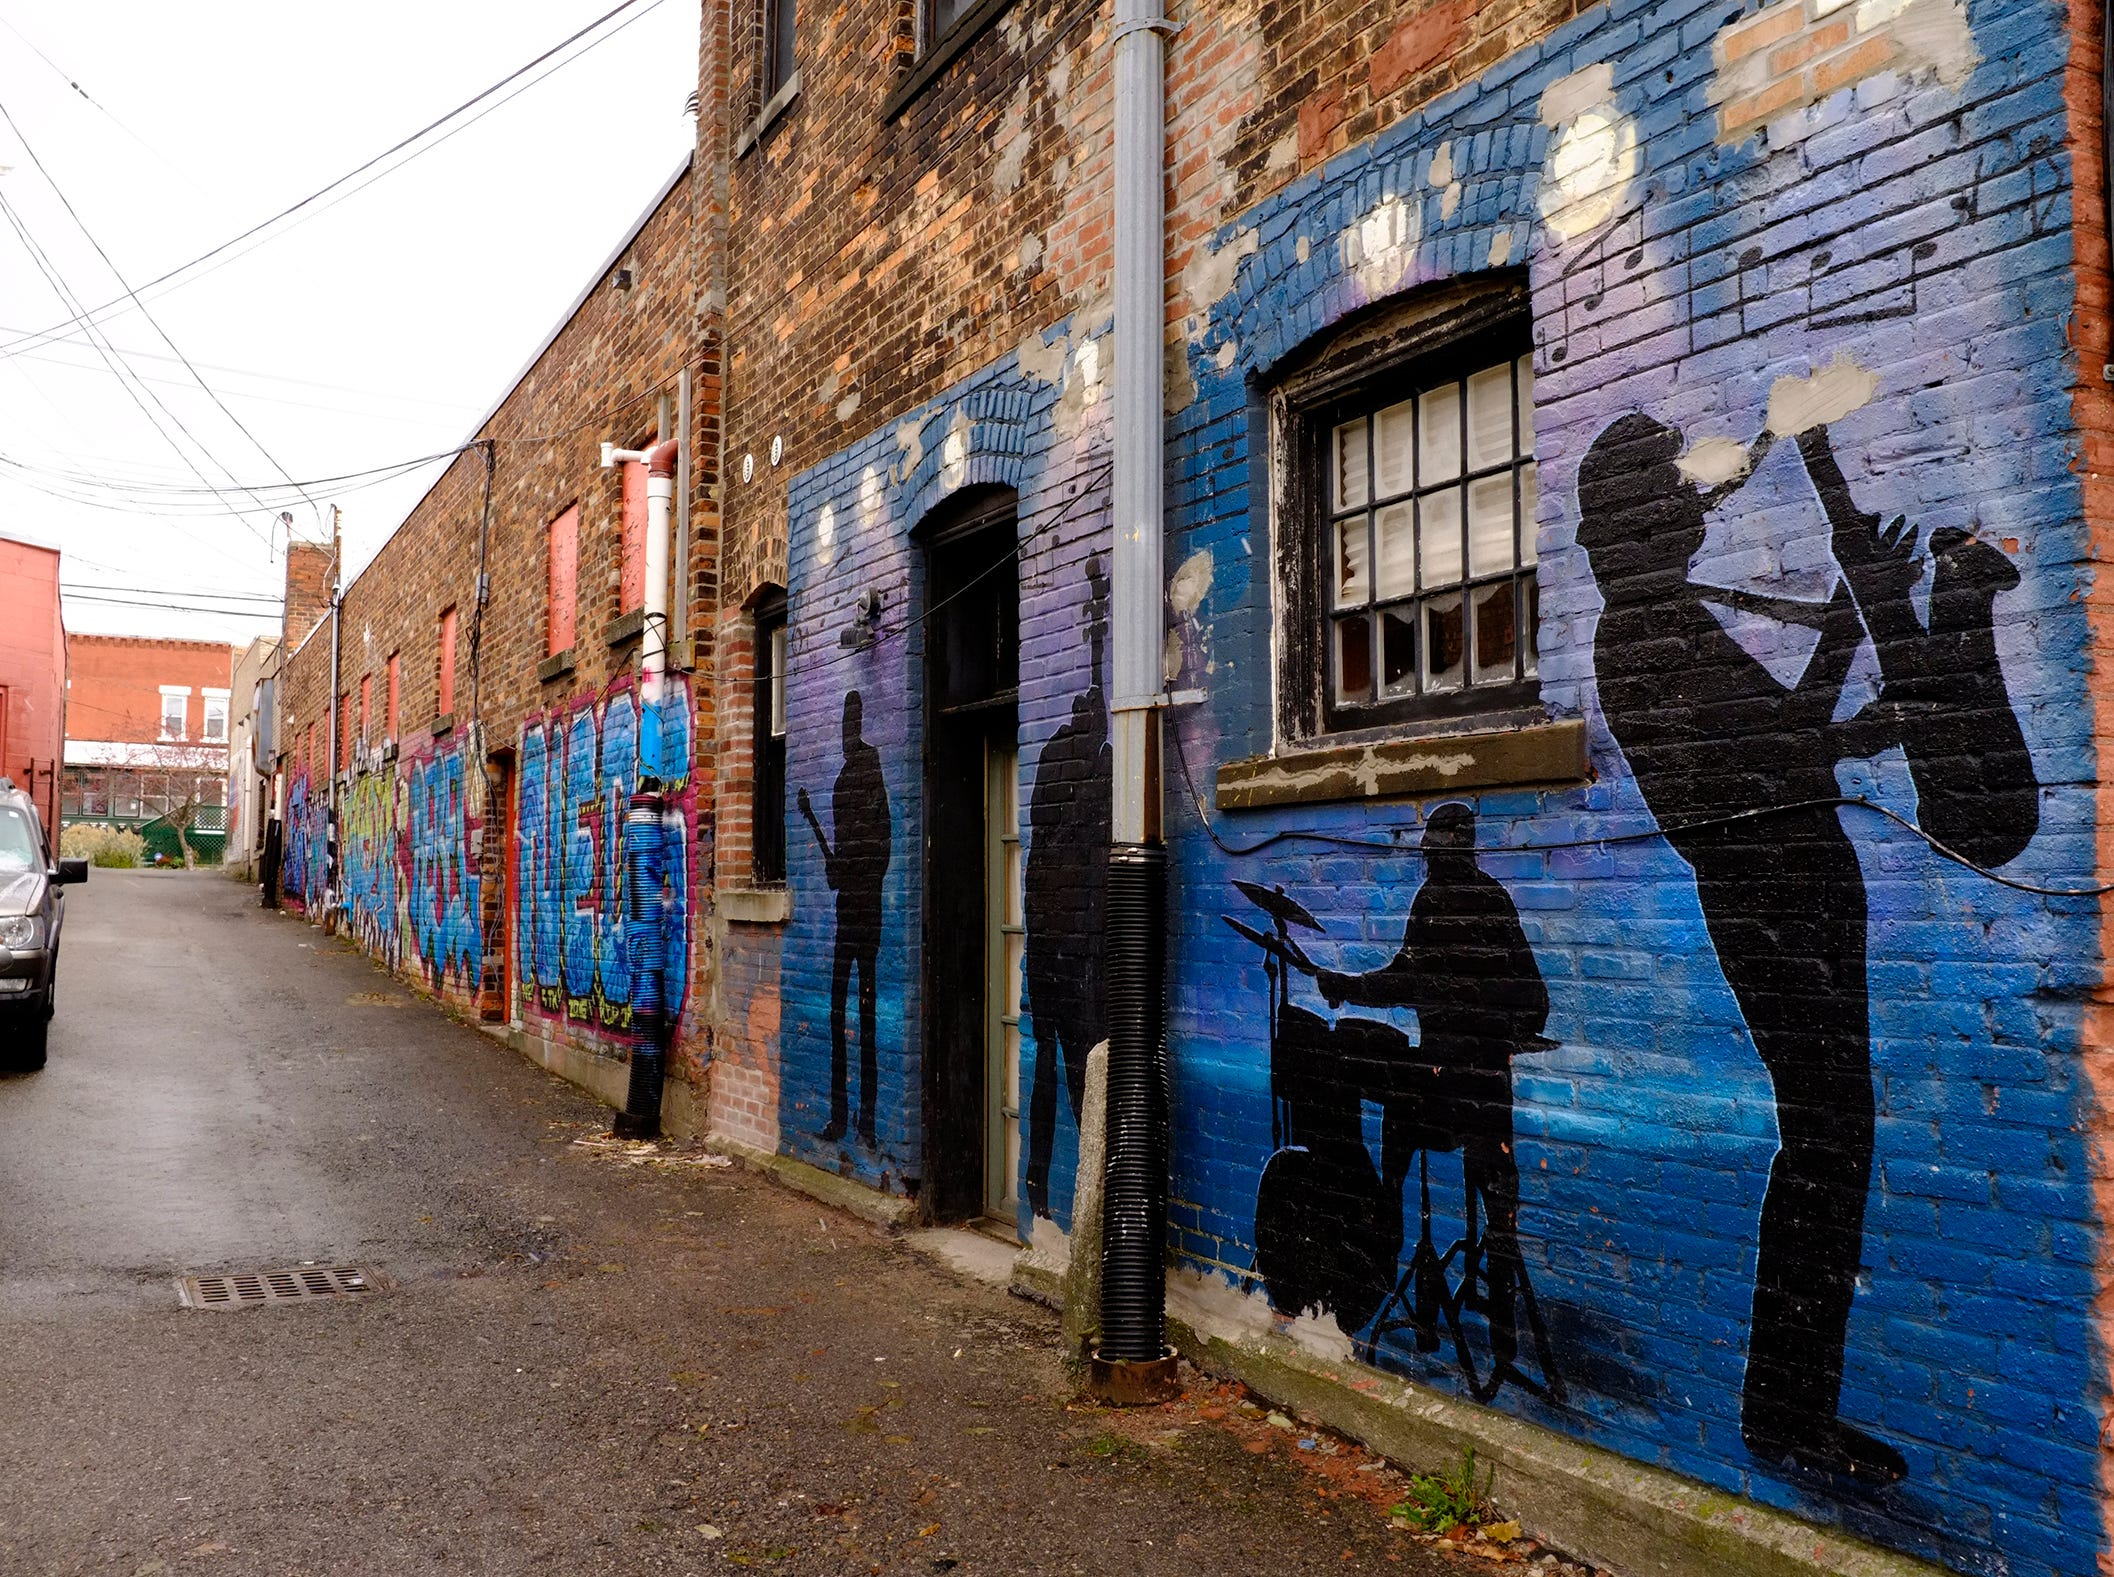 This is one of several murals in the alley behind businesses on 300 E. Cesar Chavez Avenue in Lansing's Old Town.